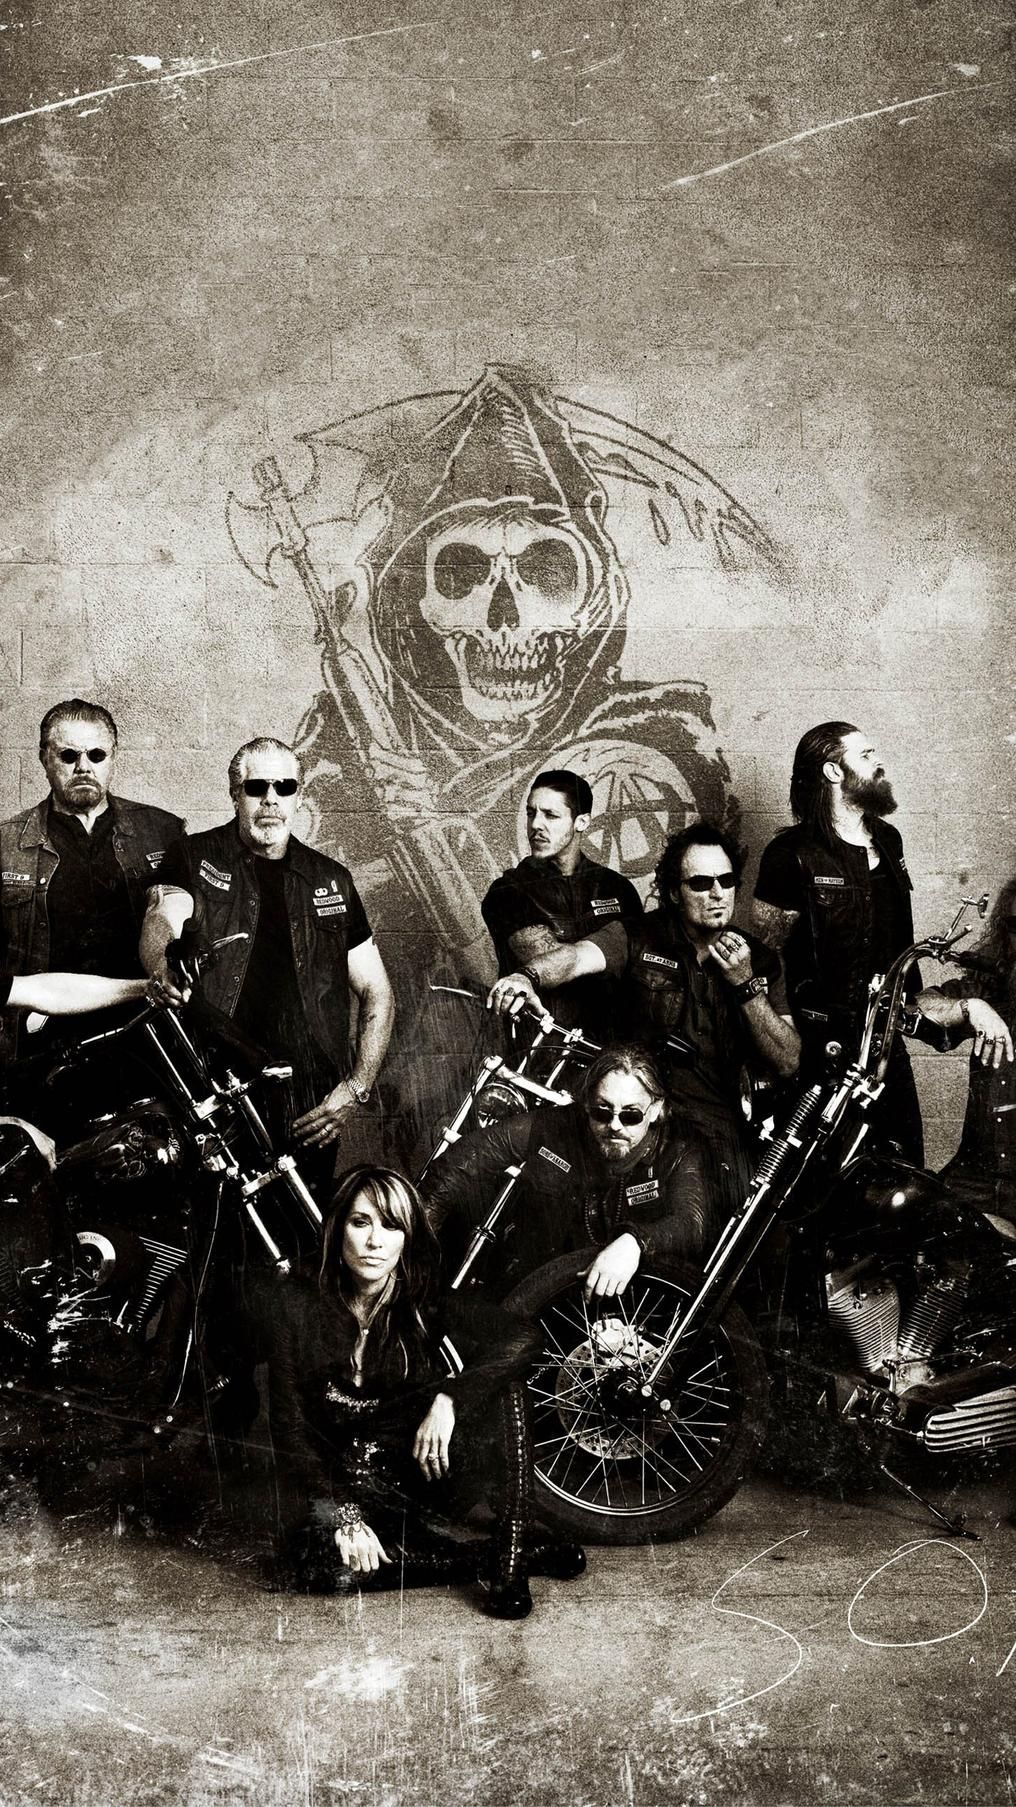 Sons Of Anarchy Phone Wallpaper In 2020 Sons Of Anarchy Anarchy